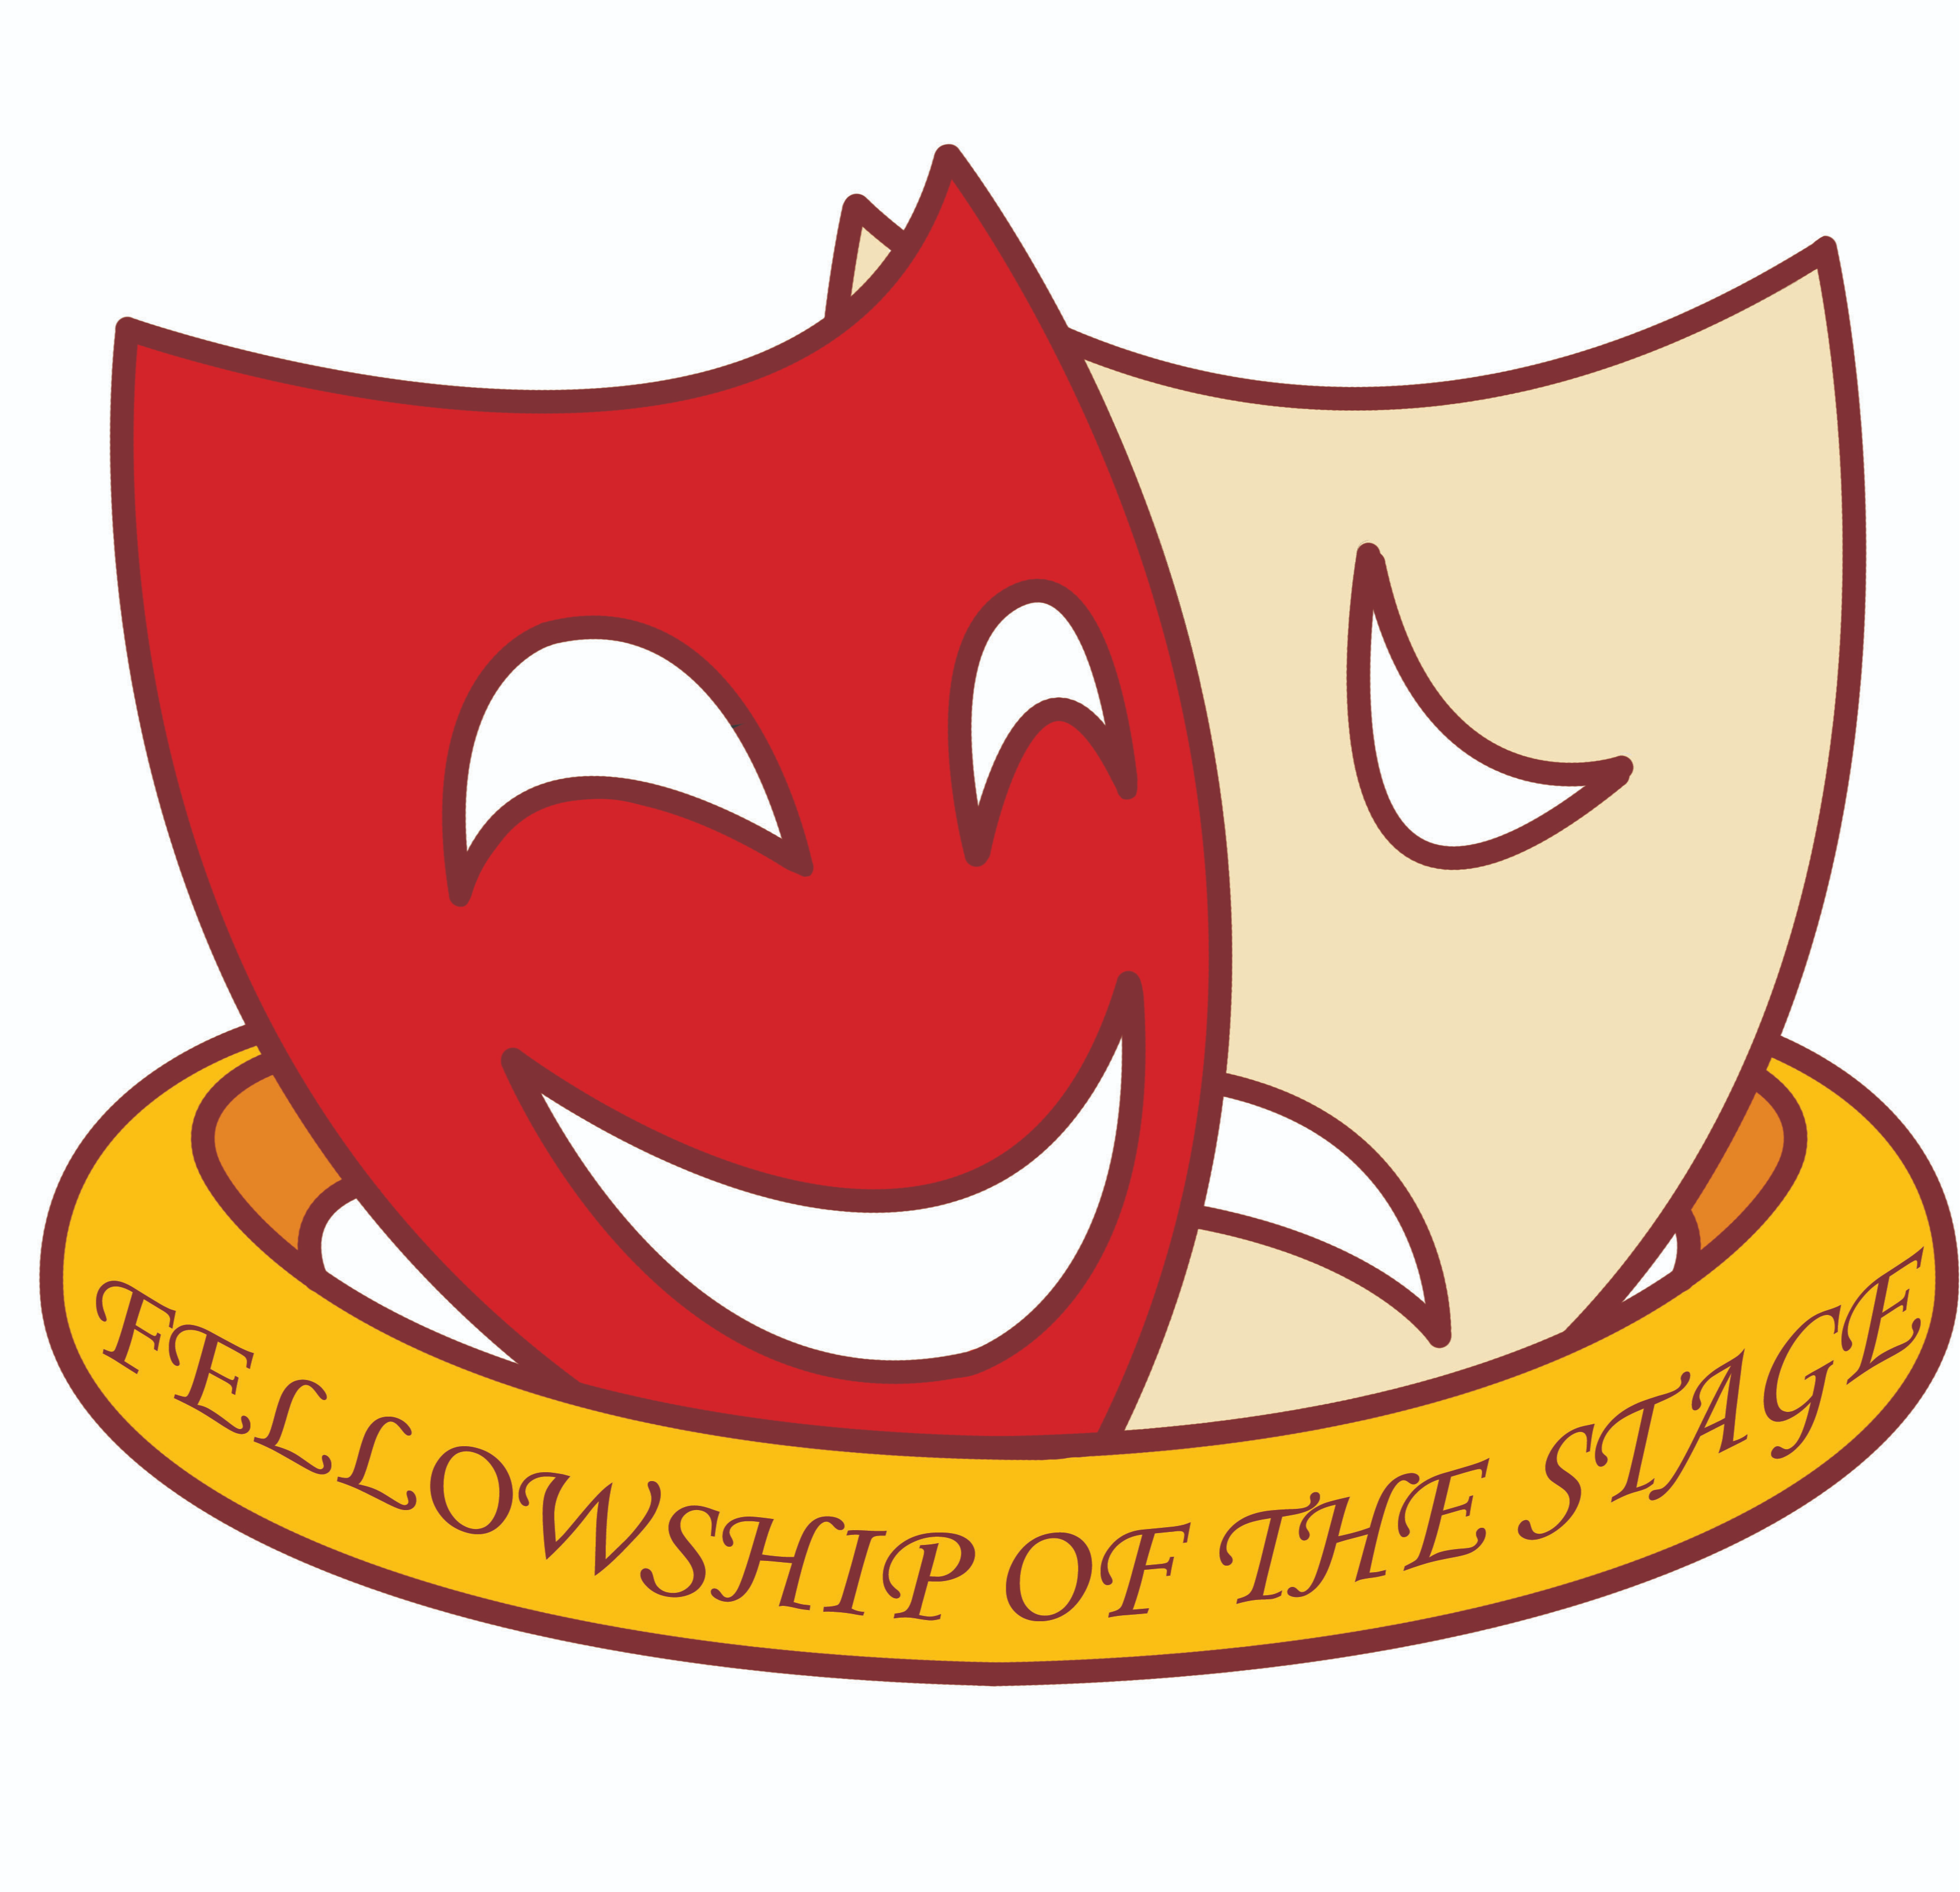 Fellowship of the Stage